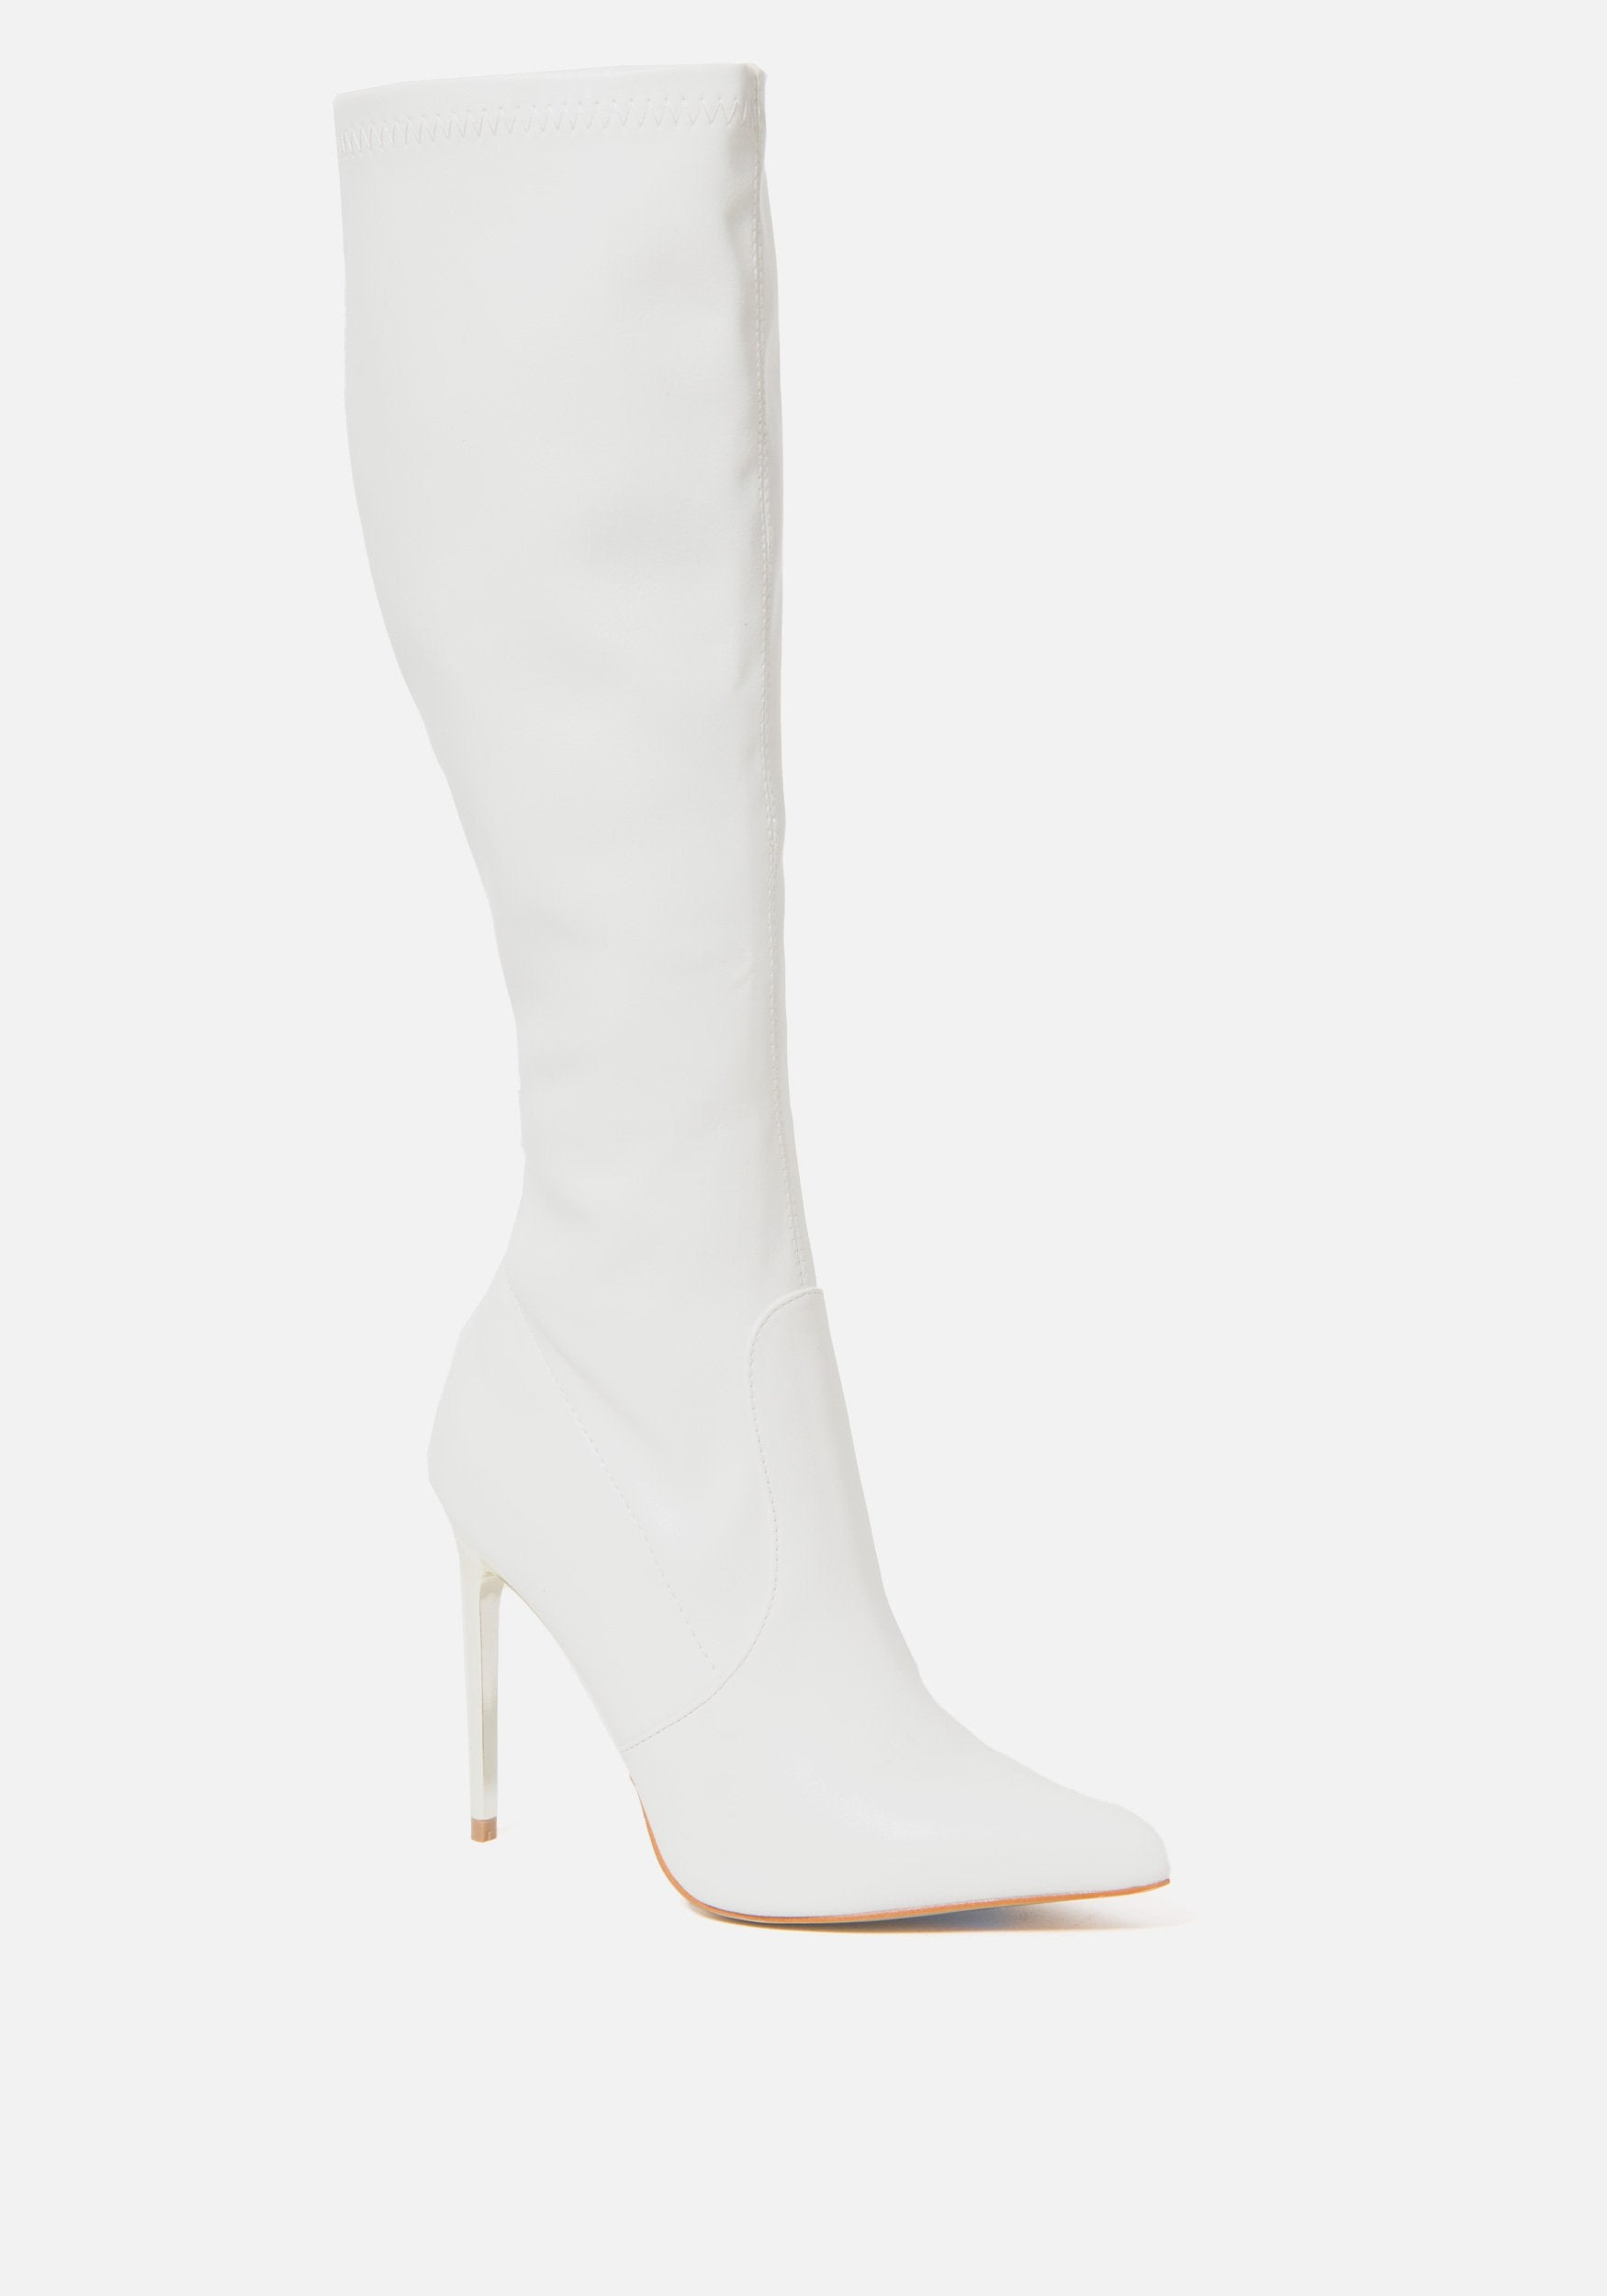 Bebe Women's Valeria Knee High Boots, Size 6 in WINTER WHITE Synthetic